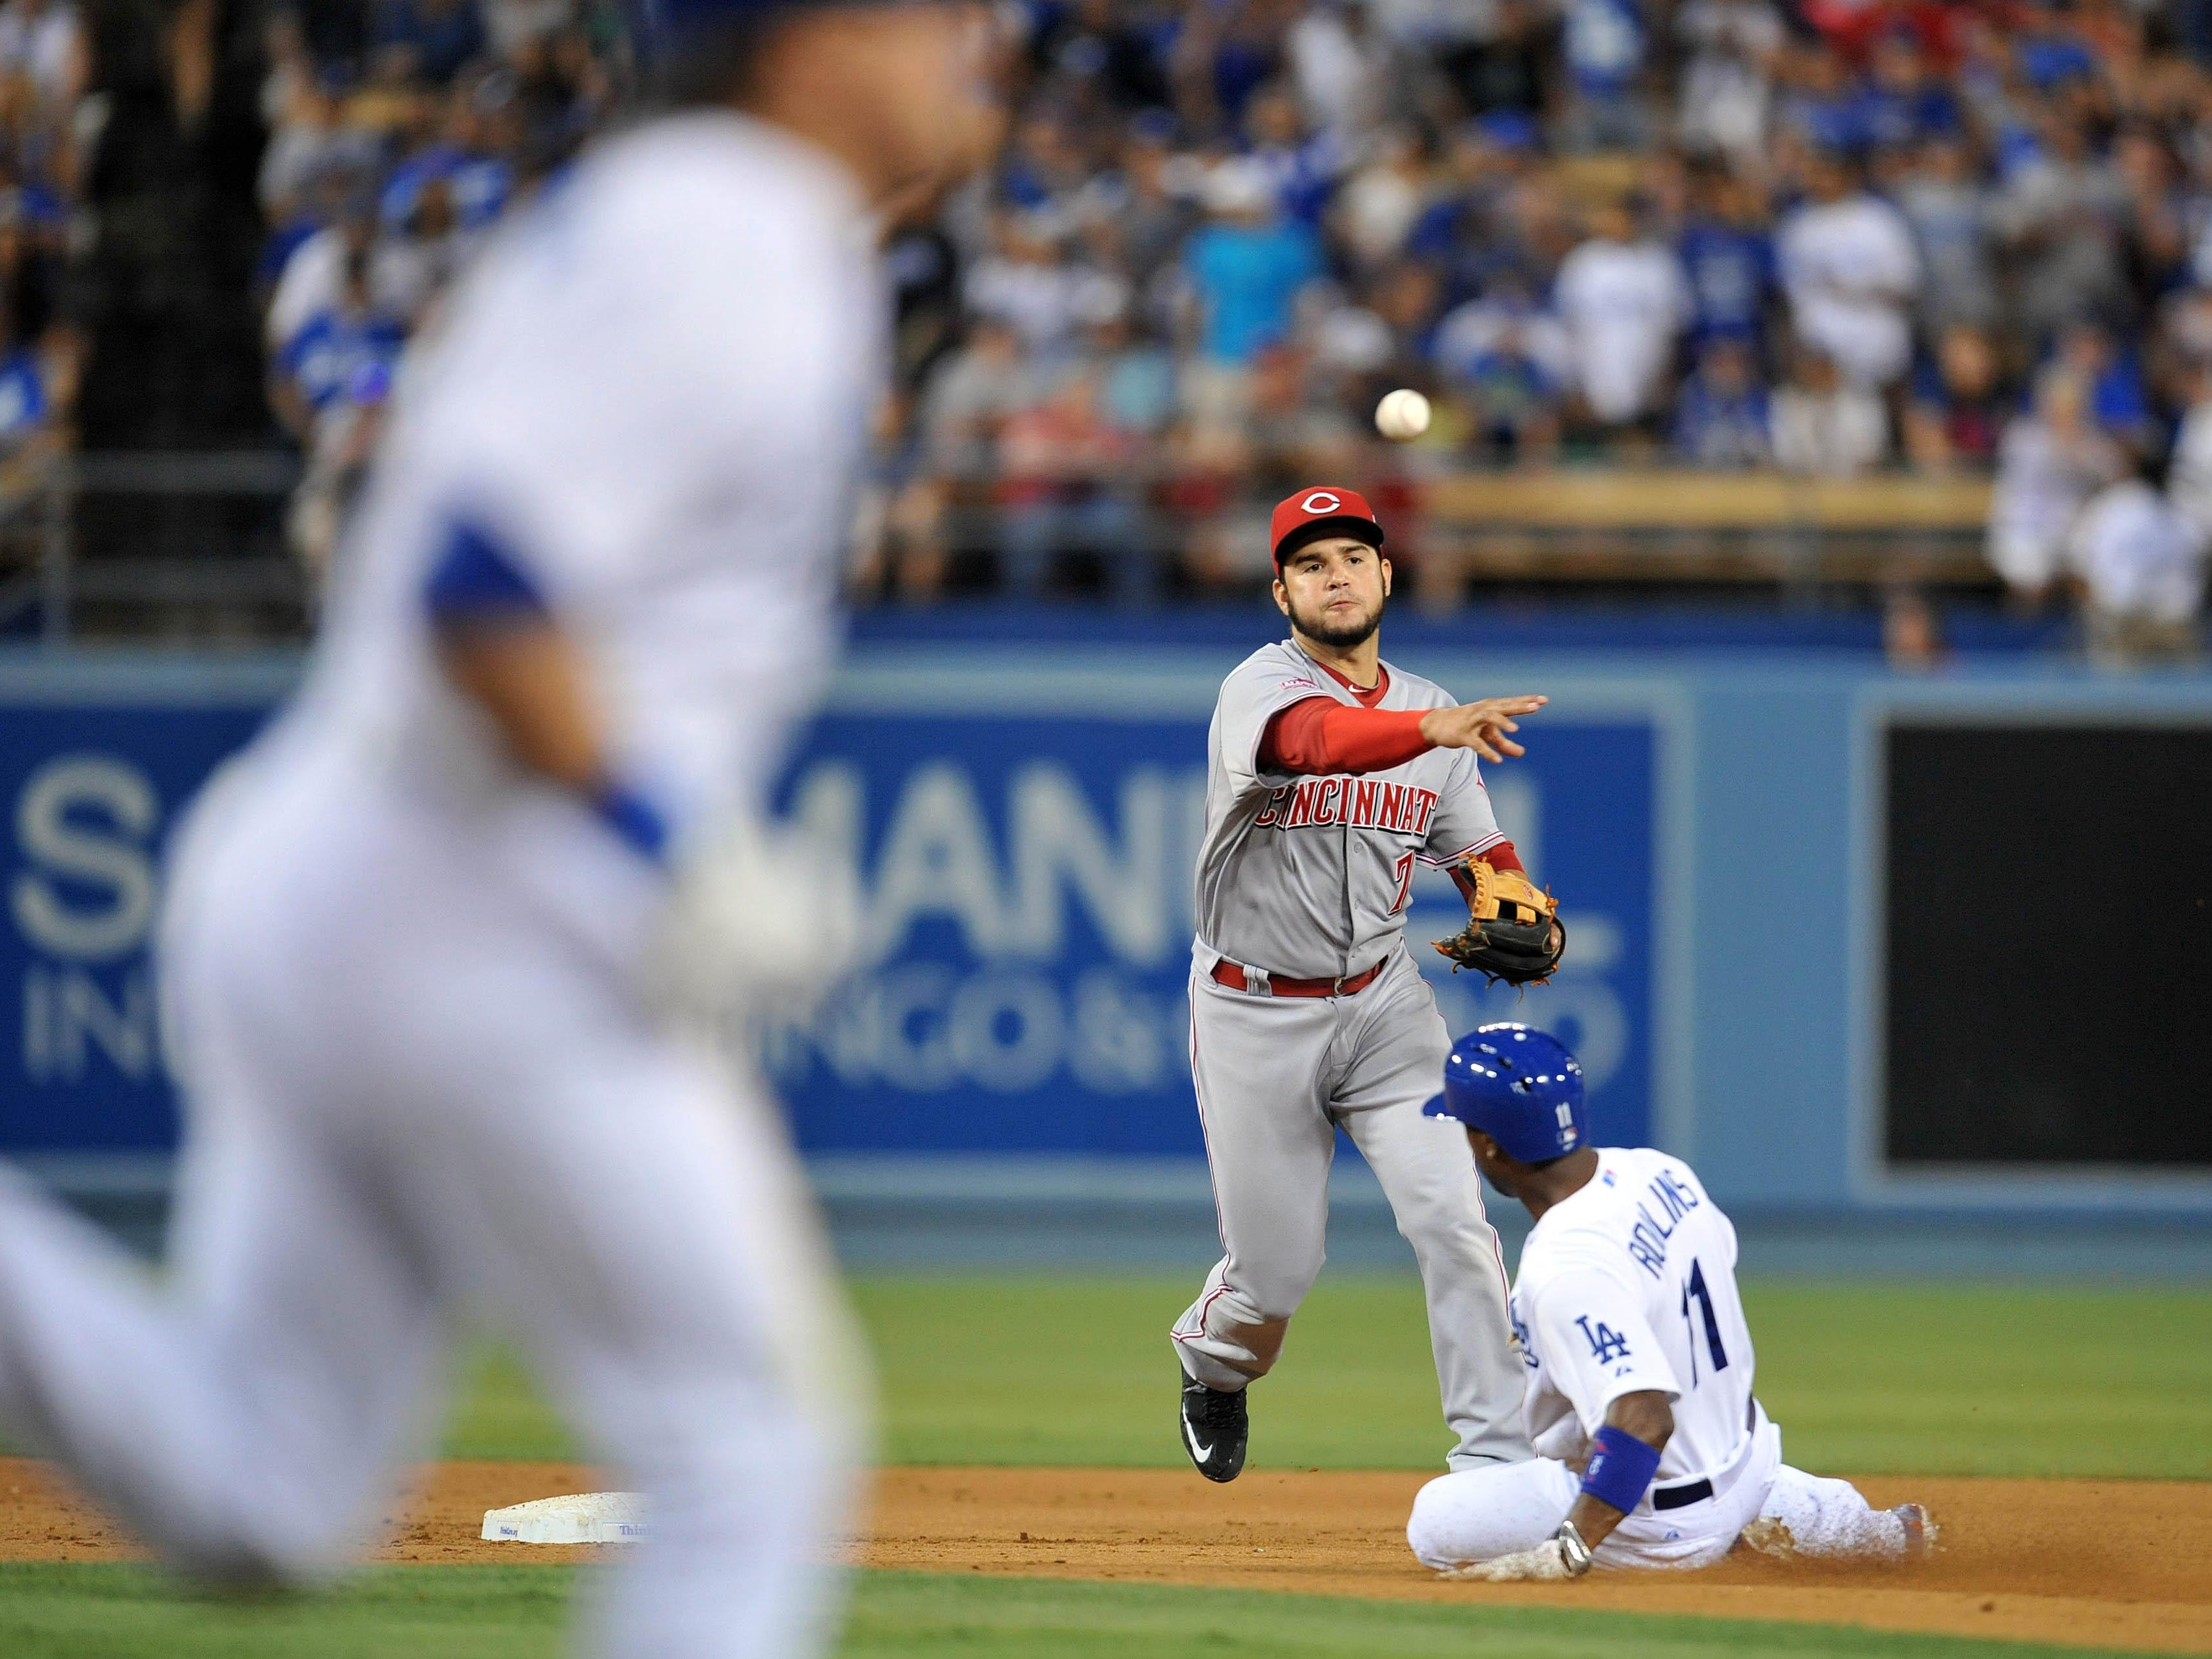 Cincinnati shortstop Eugenio Suarez throws to first base to turn a double play in the sixth inning against Los Angeles on Saturday night at Dodger Stadium.